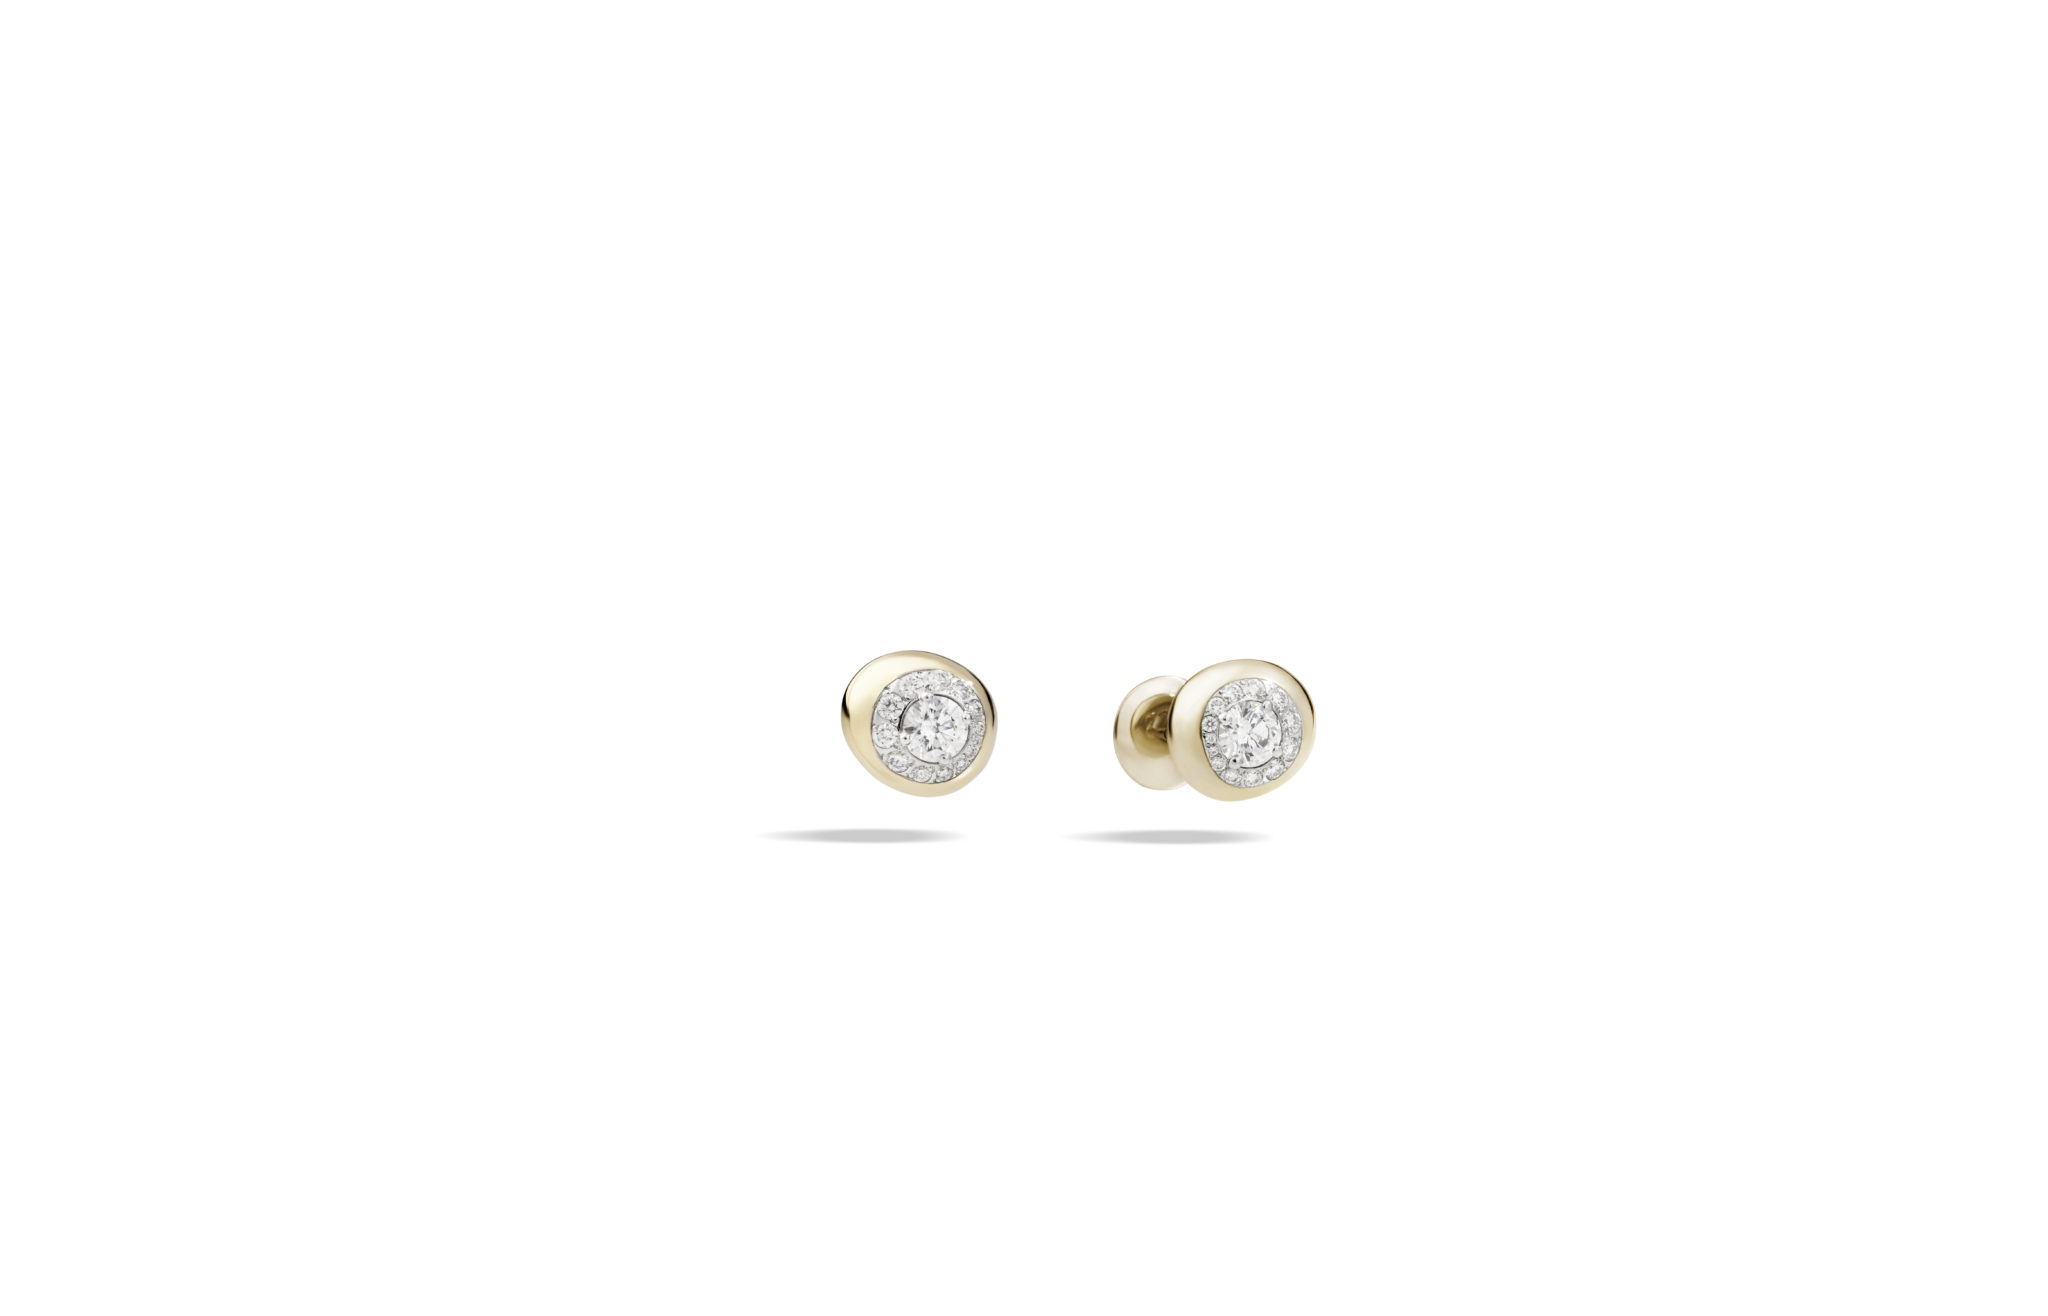 Nuvola earrings rose gold with diamonds by Pomellato (1)